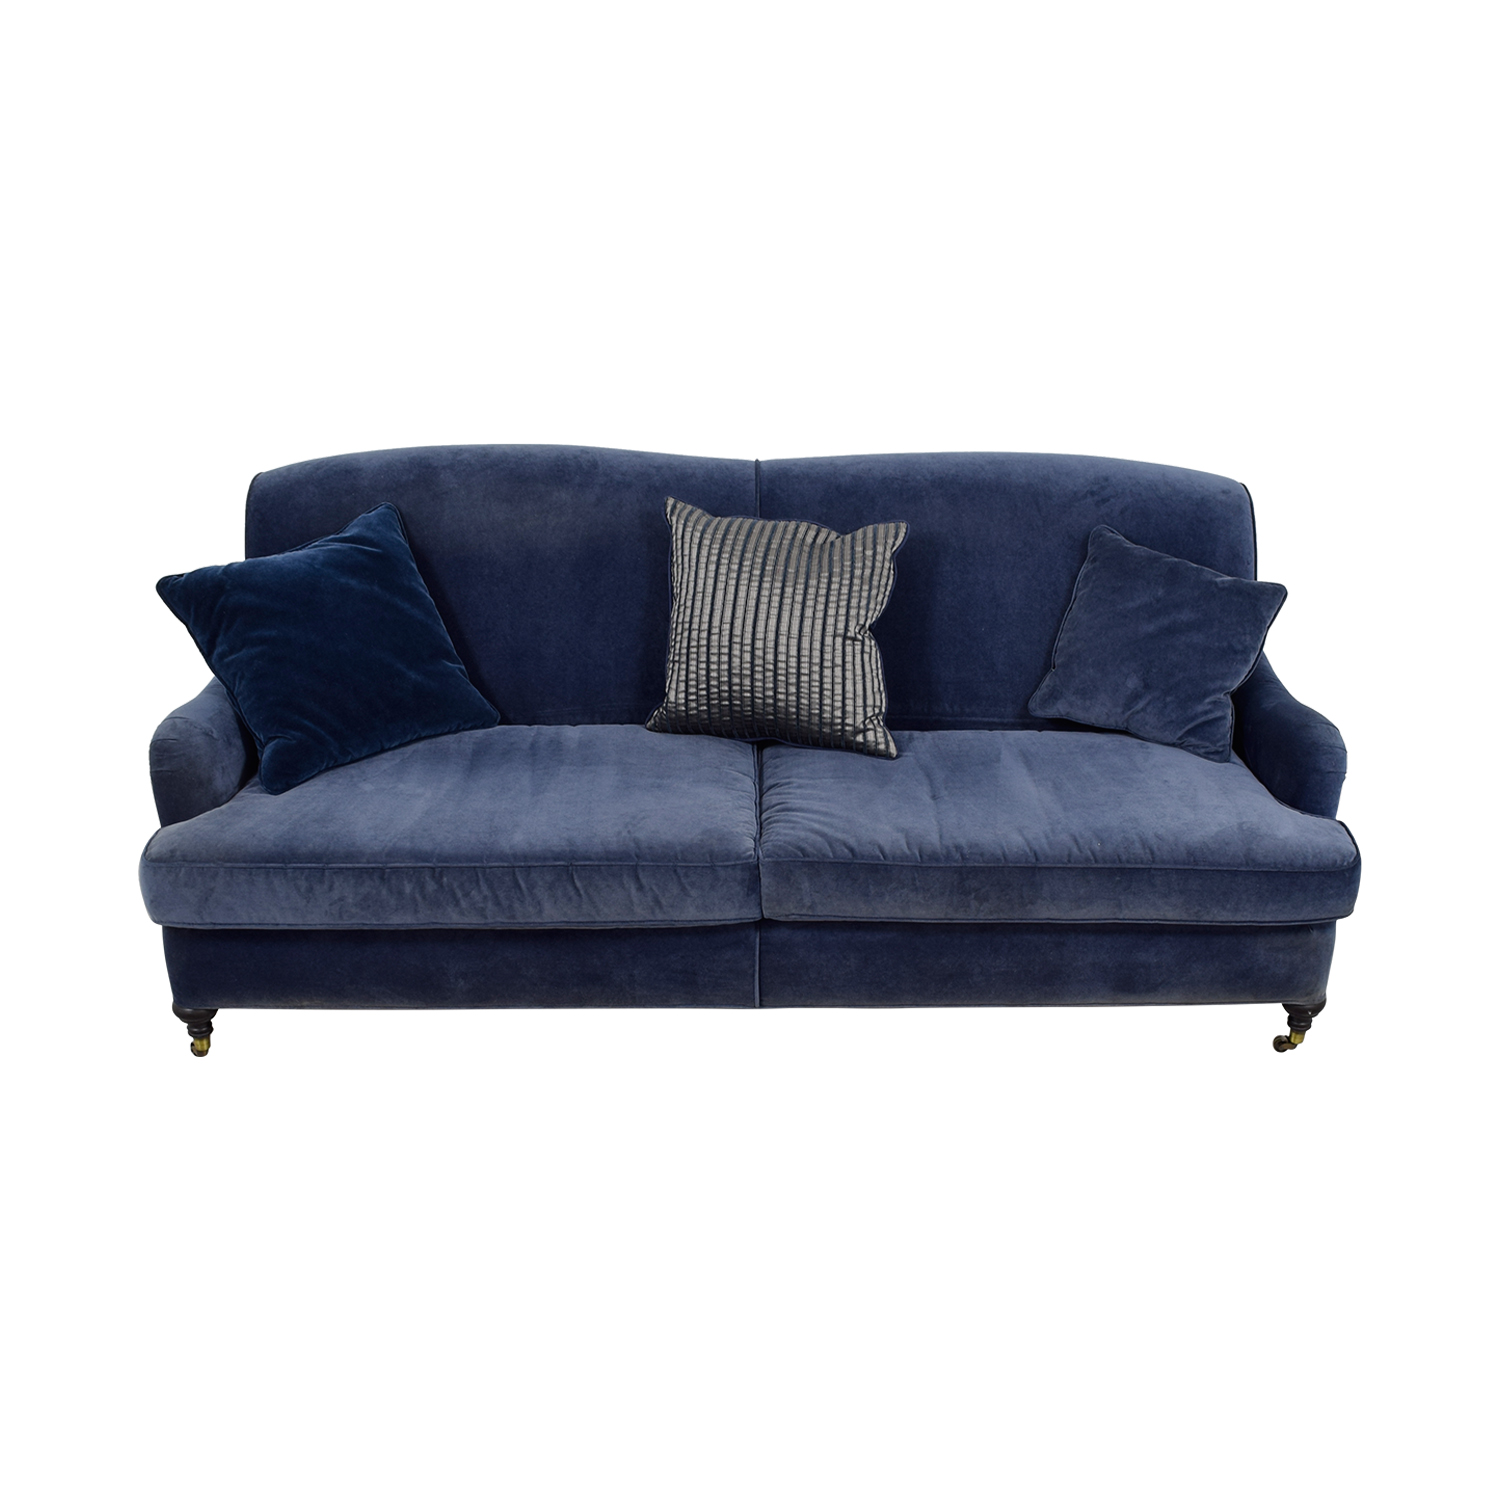 Mitchell Gold + Bob Williams Blue Velvet Sofa on Castors / Sofas